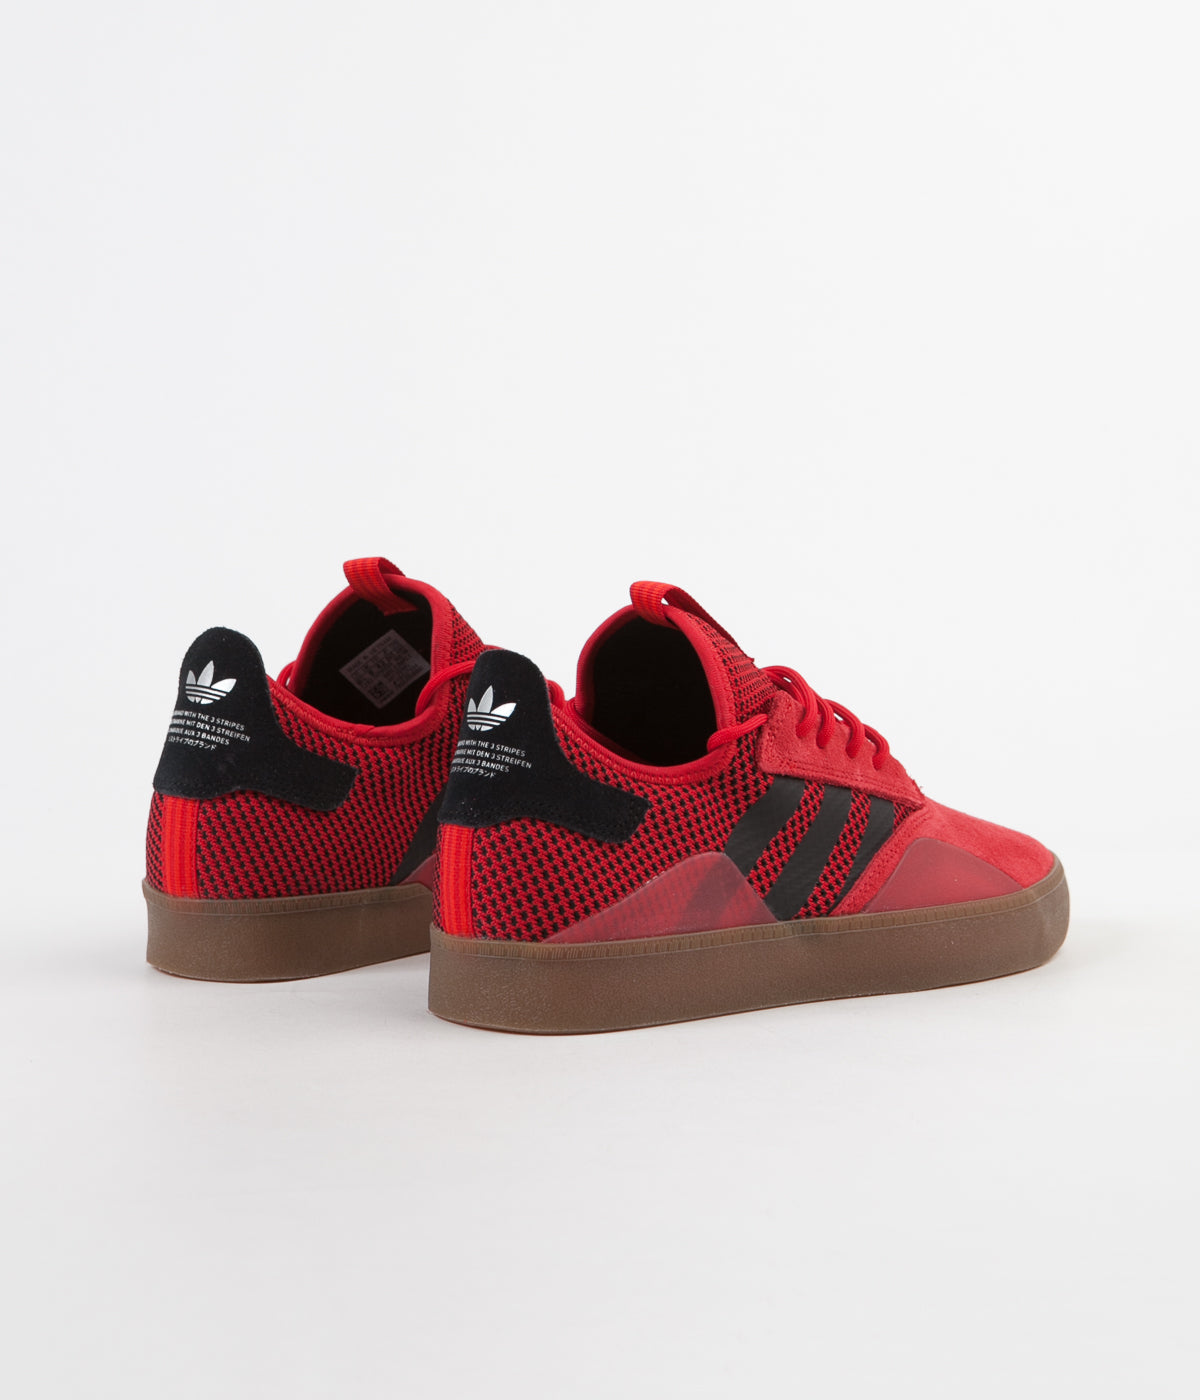 official photos 7ee31 9703b adidas-3st-001-shoes-scarlet-core-black-gum4-4.jpg